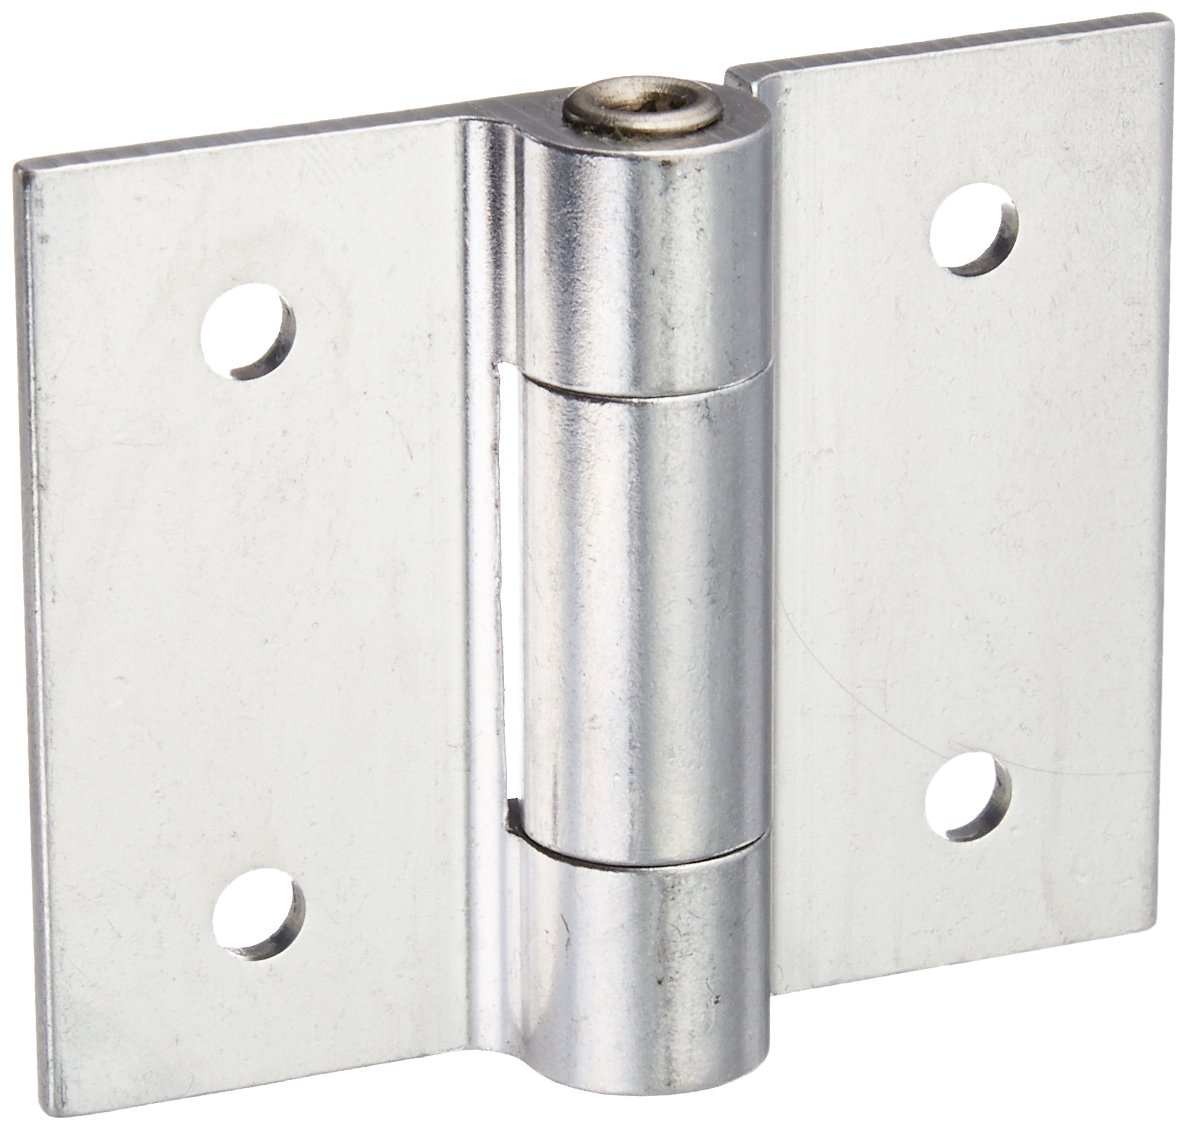 Drum Workshop, Inc. Heavy Duty Hinge DWSM005